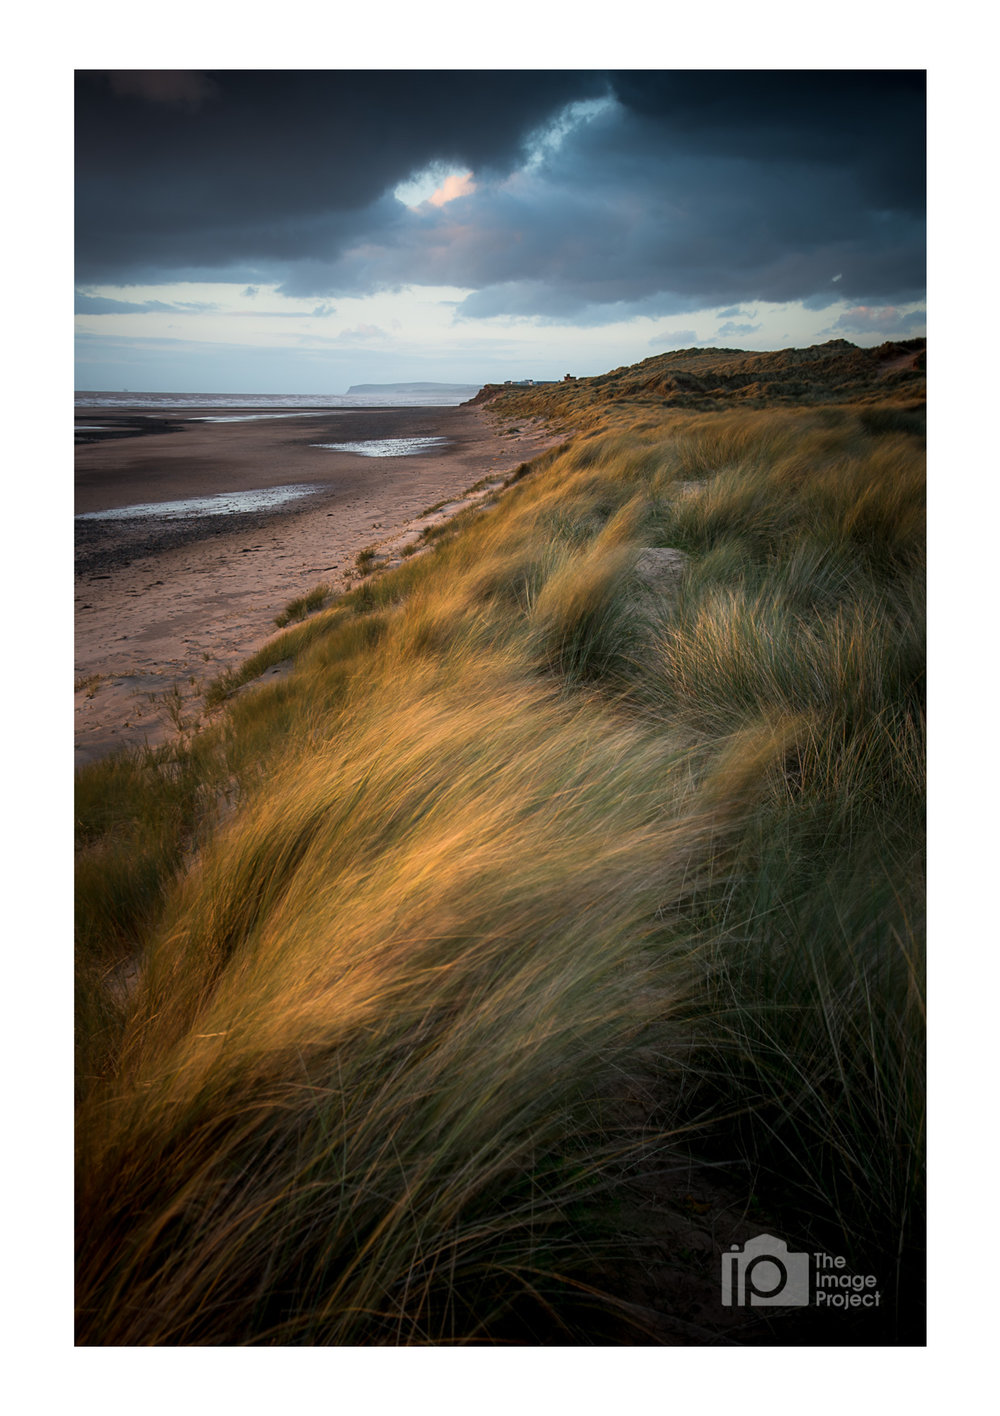 Evening light hits grassy sand dunes at Drigg